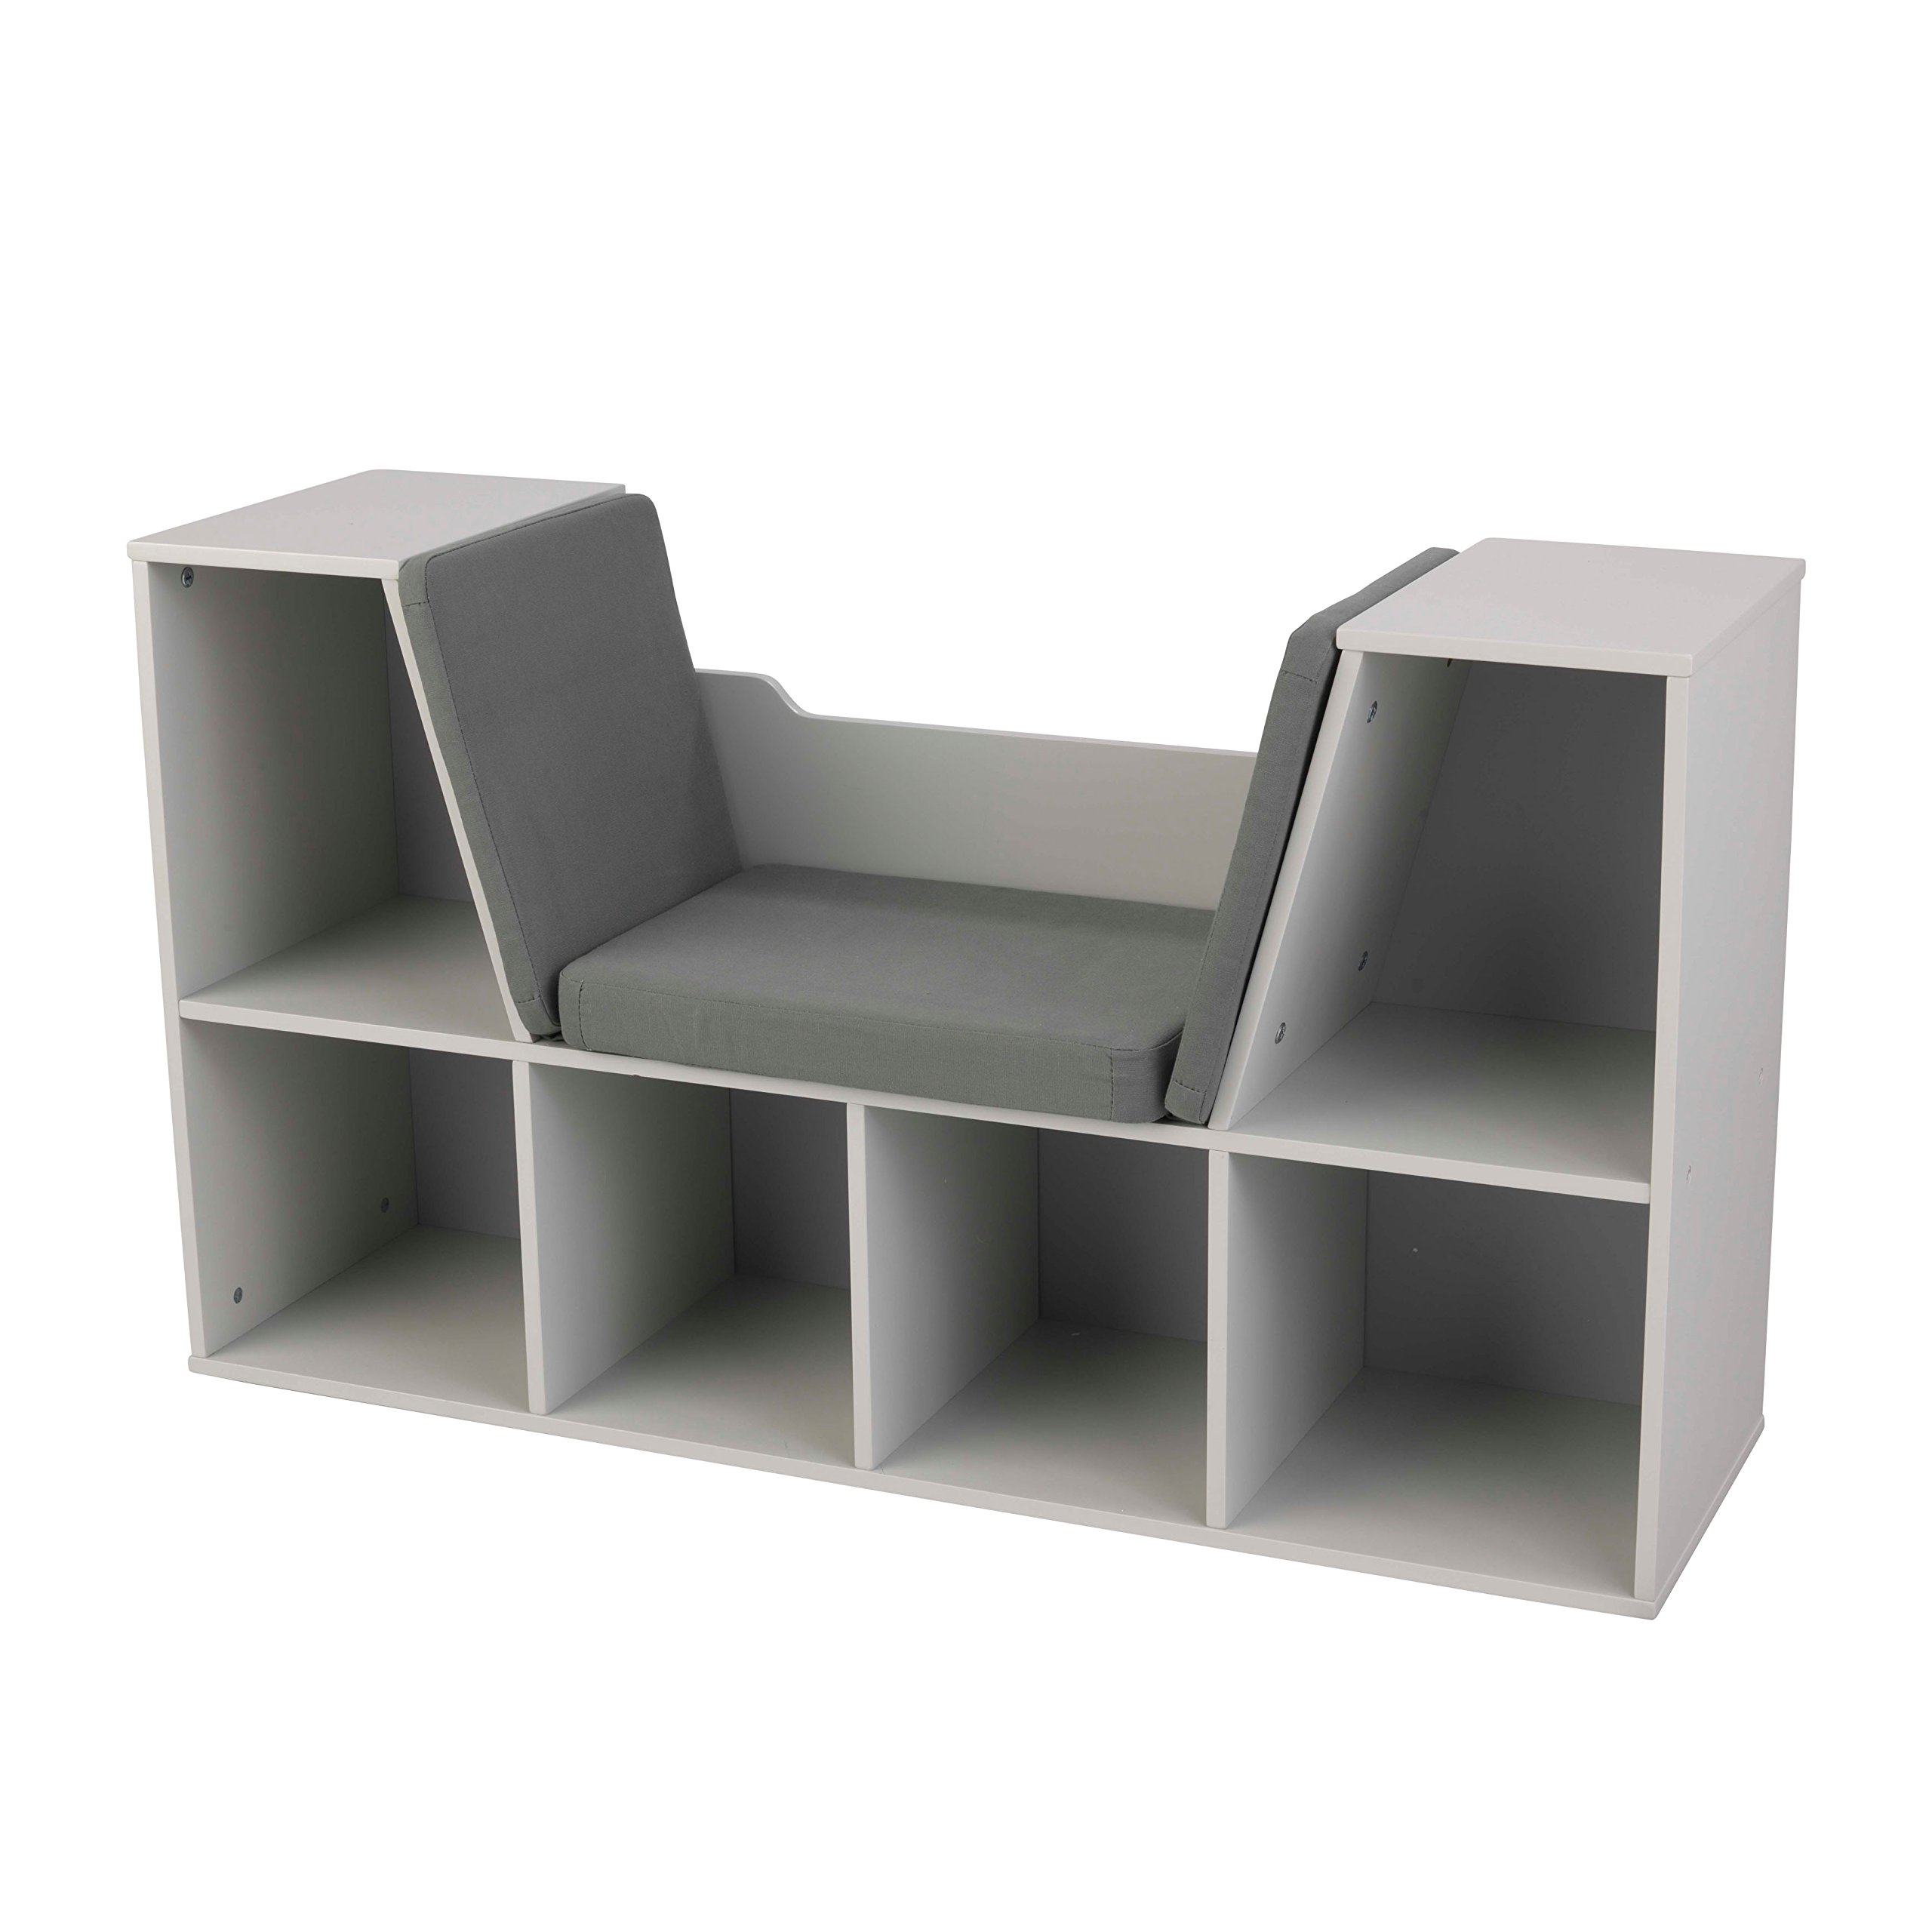 KidKraft Bookcase with Reading Nook Furniture, Gray